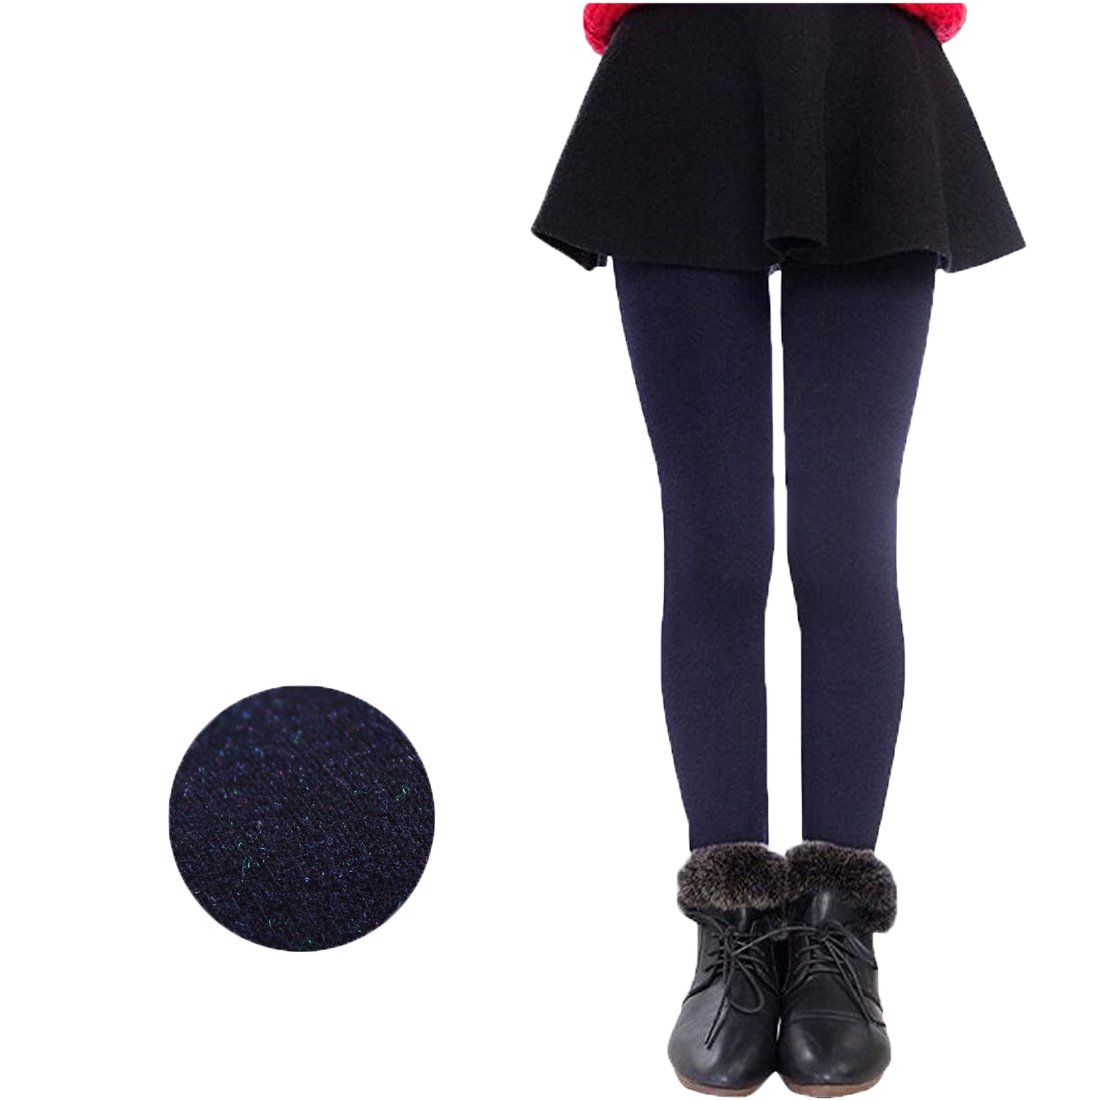 Weigou Winter Girls Leggings Pants Thick Warm Fleece Lined Thermal Stretchy Pants (L(11-14 Yeas ,Height 140-150cm), Navy)